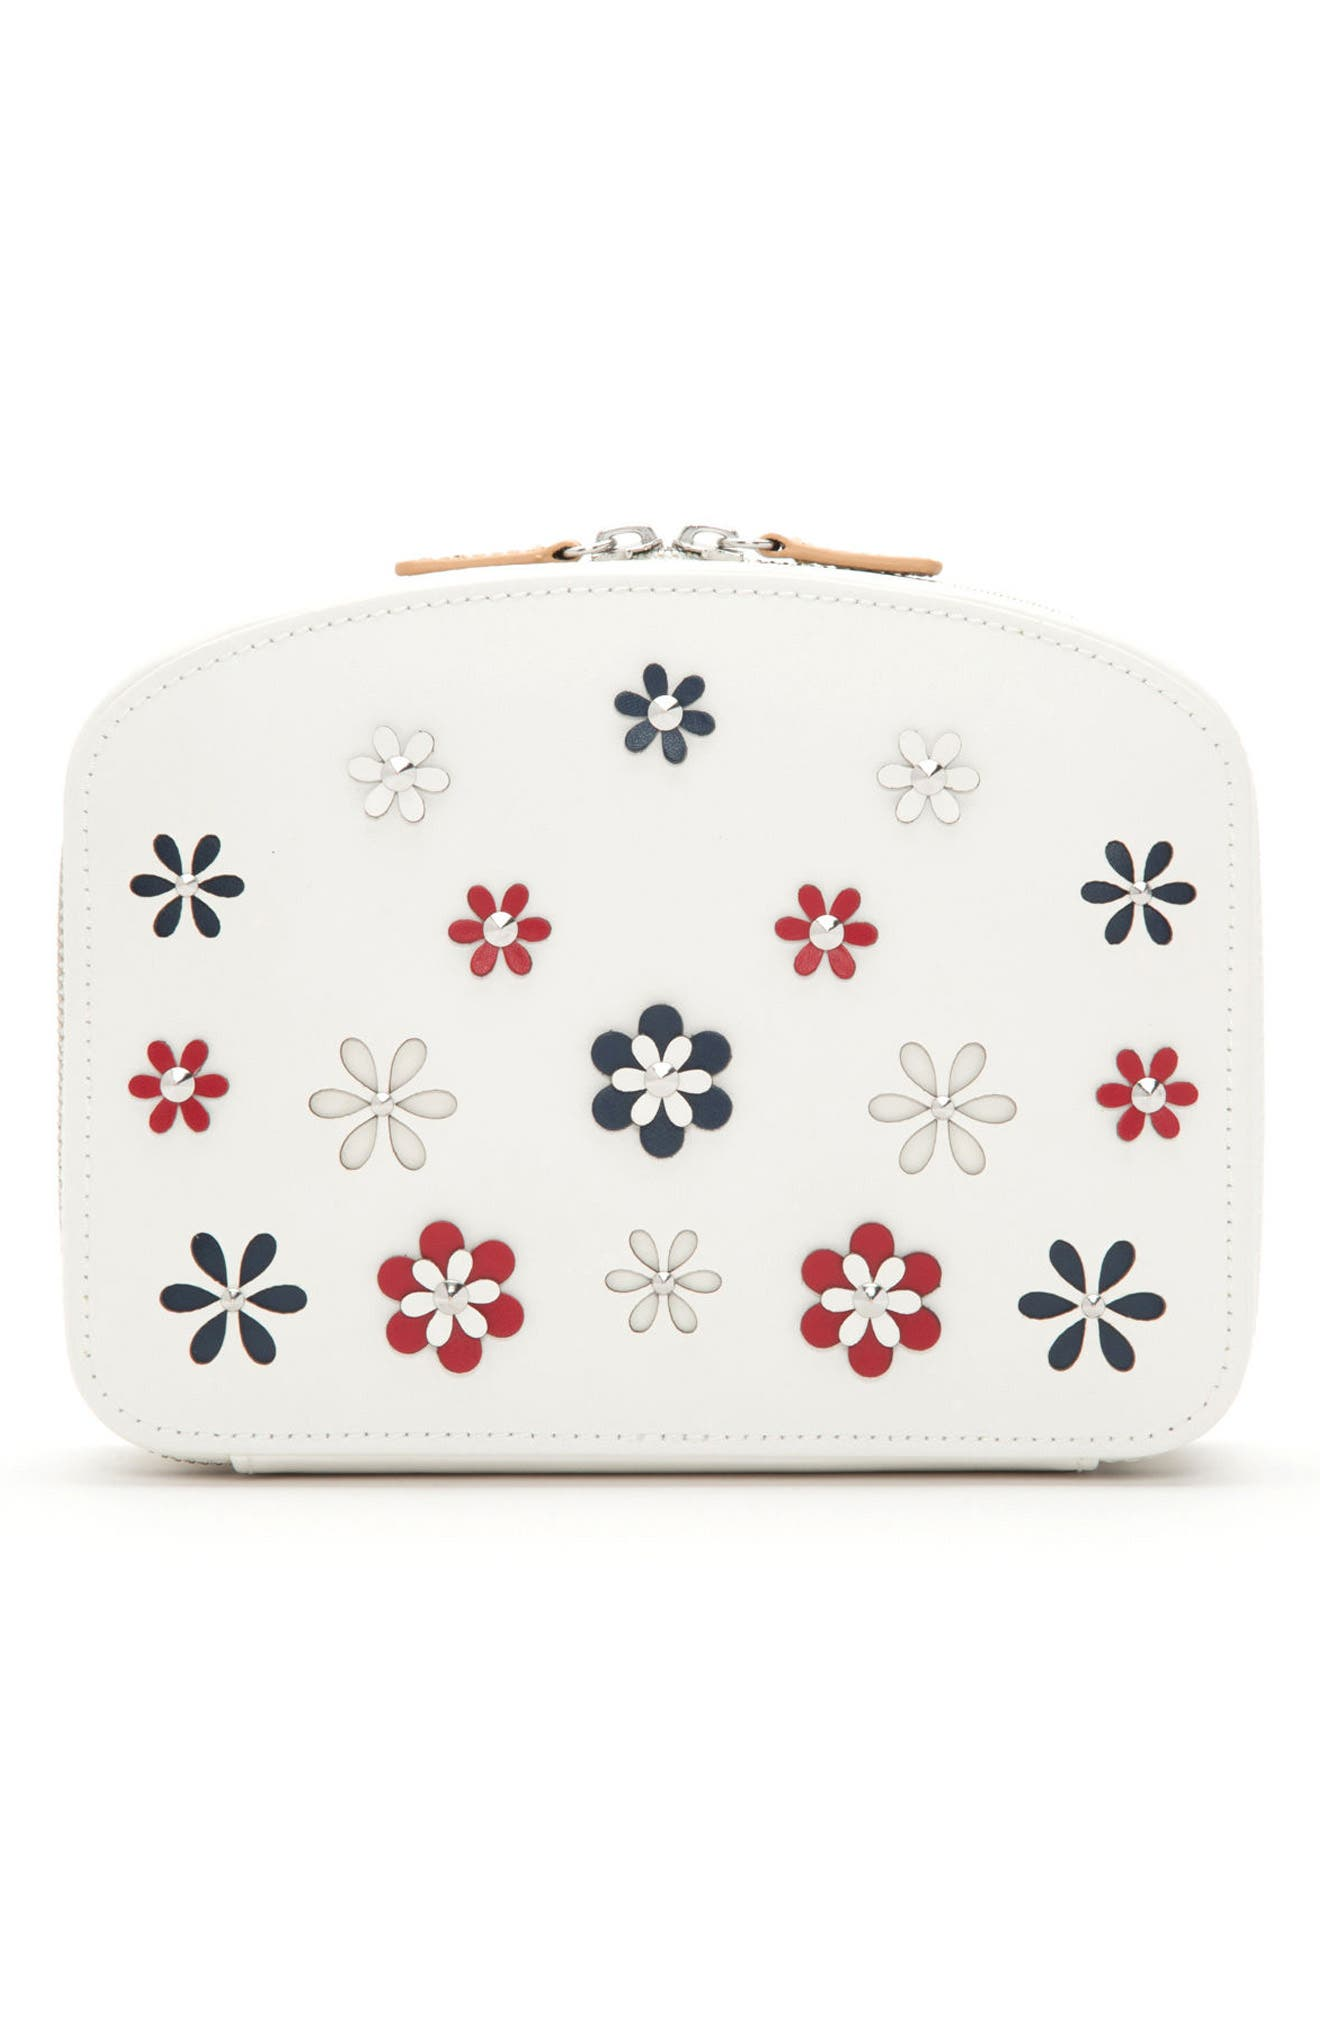 Blossom Leather Travel Jewelry Case,                             Main thumbnail 1, color,                             IVORY